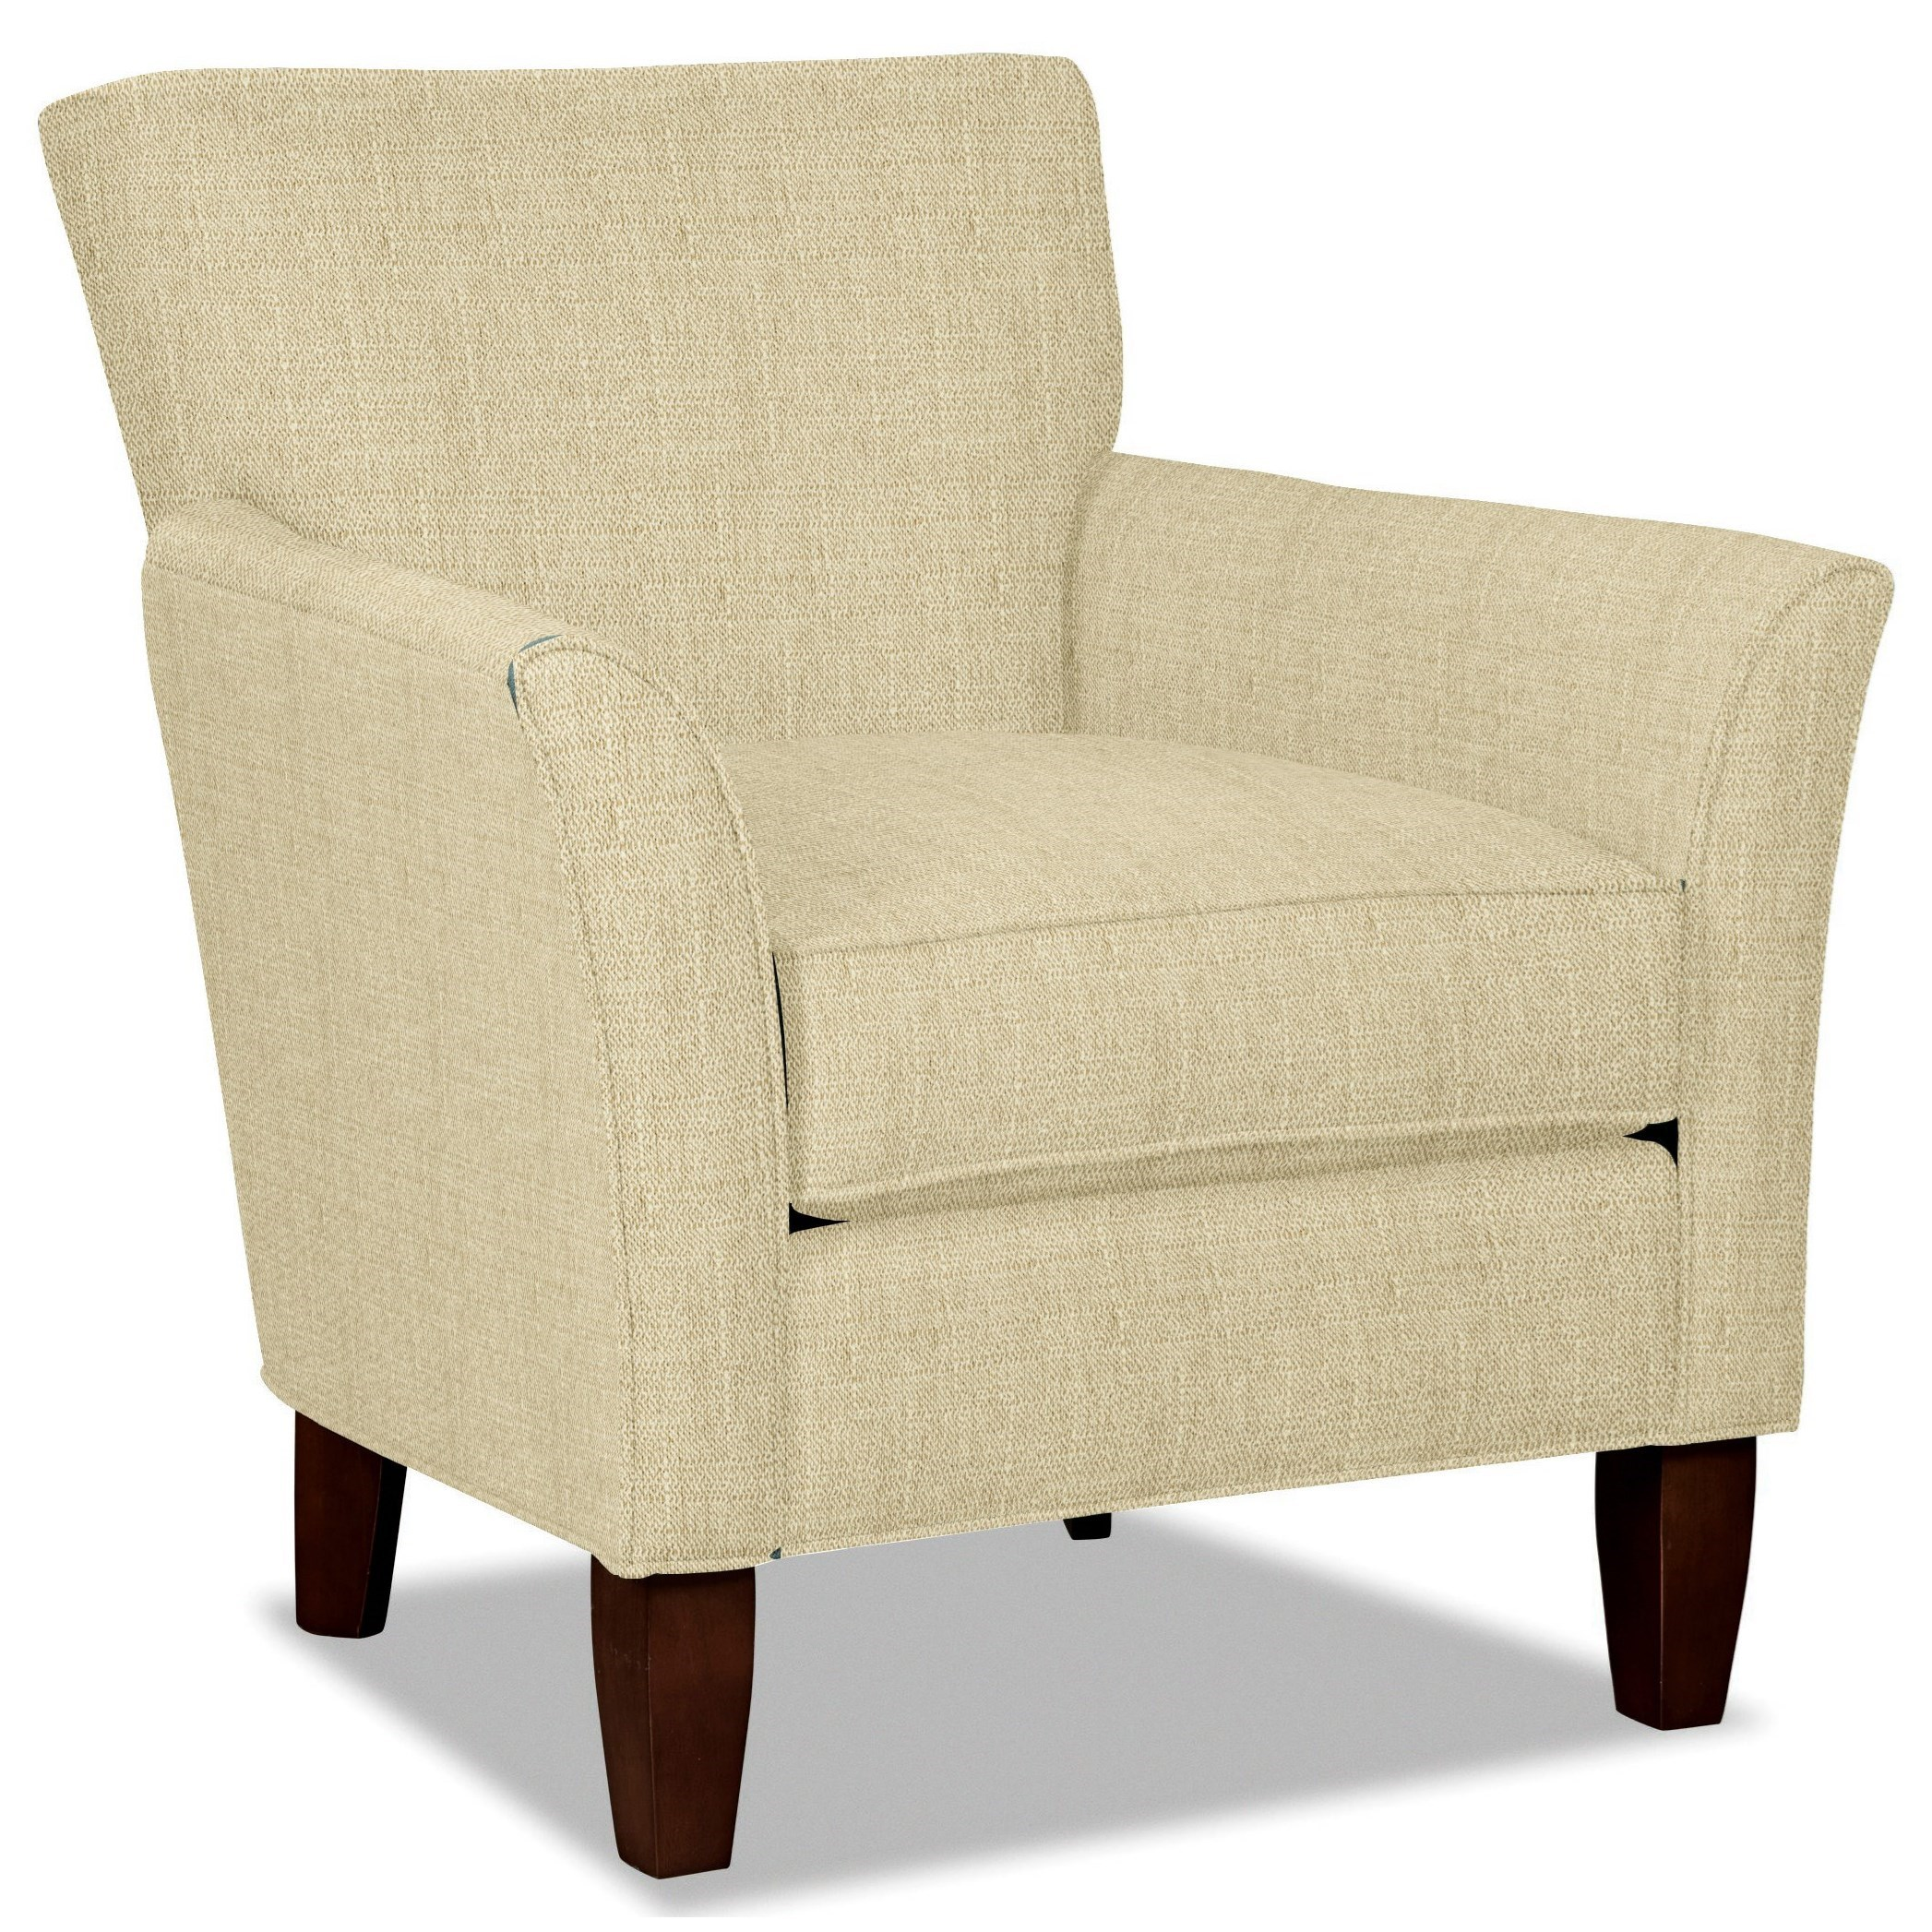 Craftmaster 060110 Accent Chair - Item Number: 060110-OATFIELD-10